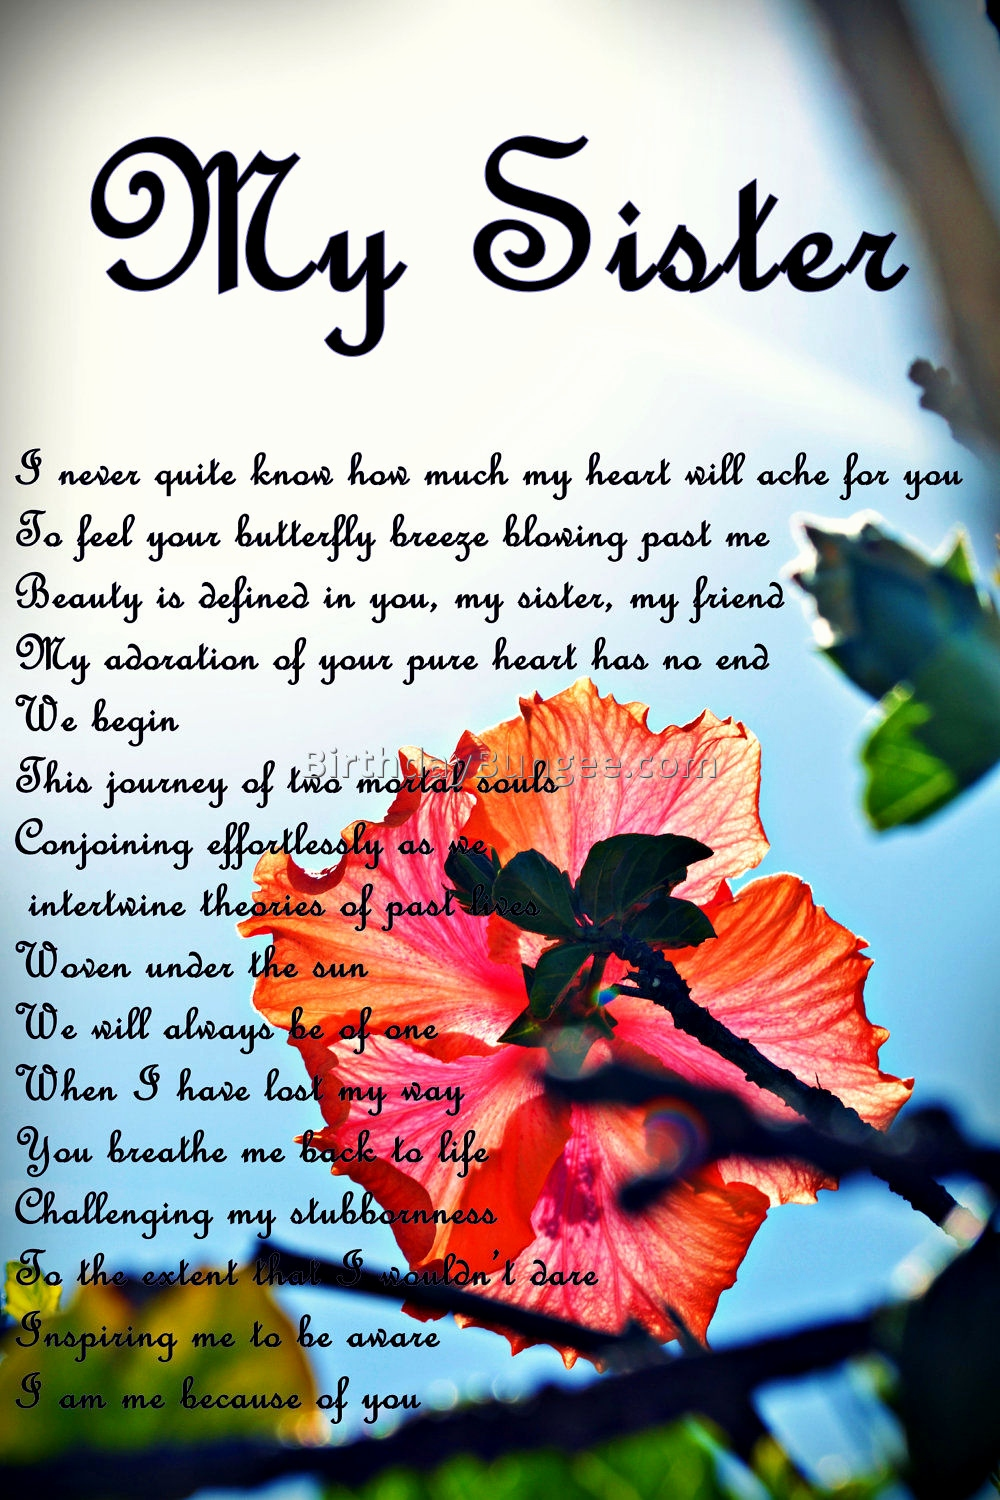 happy birthday sister quotes images ; happy-birthday-sister-quotes-and-images-new-happy-birthday-to-my-sister-quotes-6-of-happy-birthday-sister-quotes-and-images